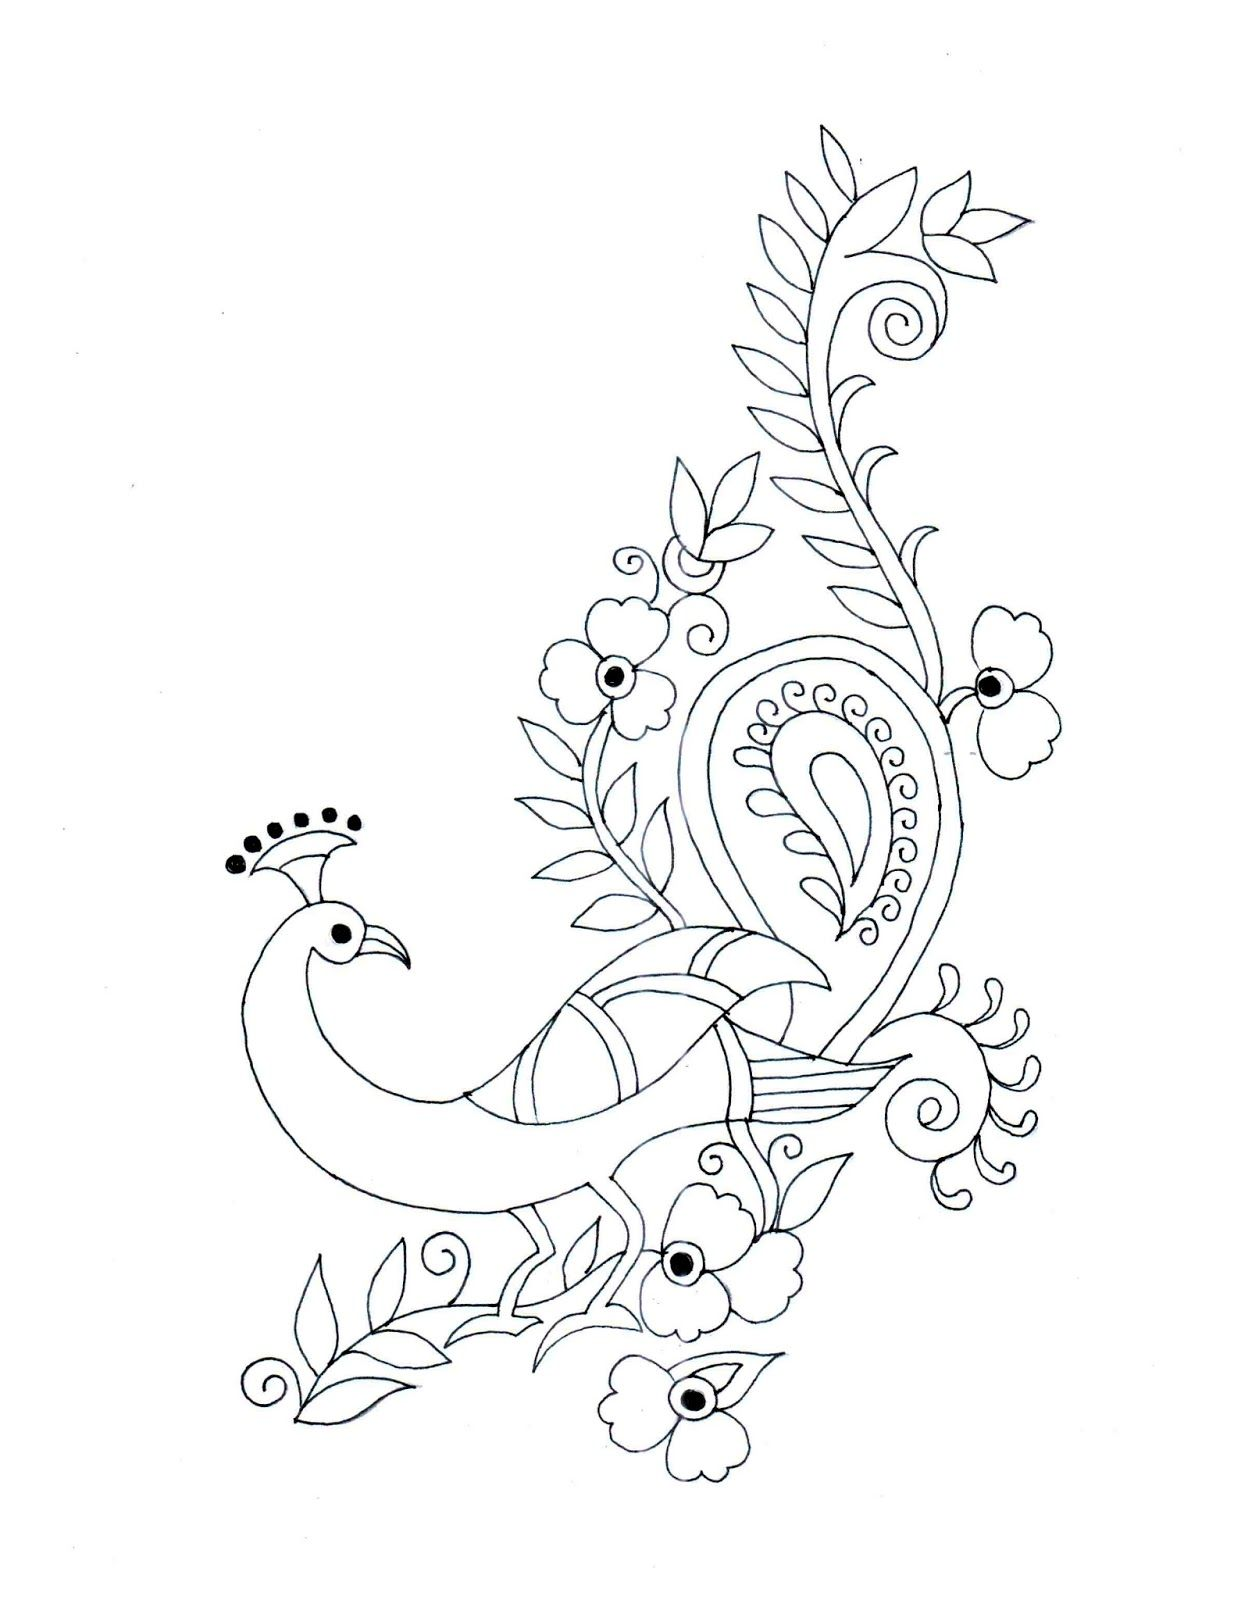 peacock embroidery patterns - Google Search